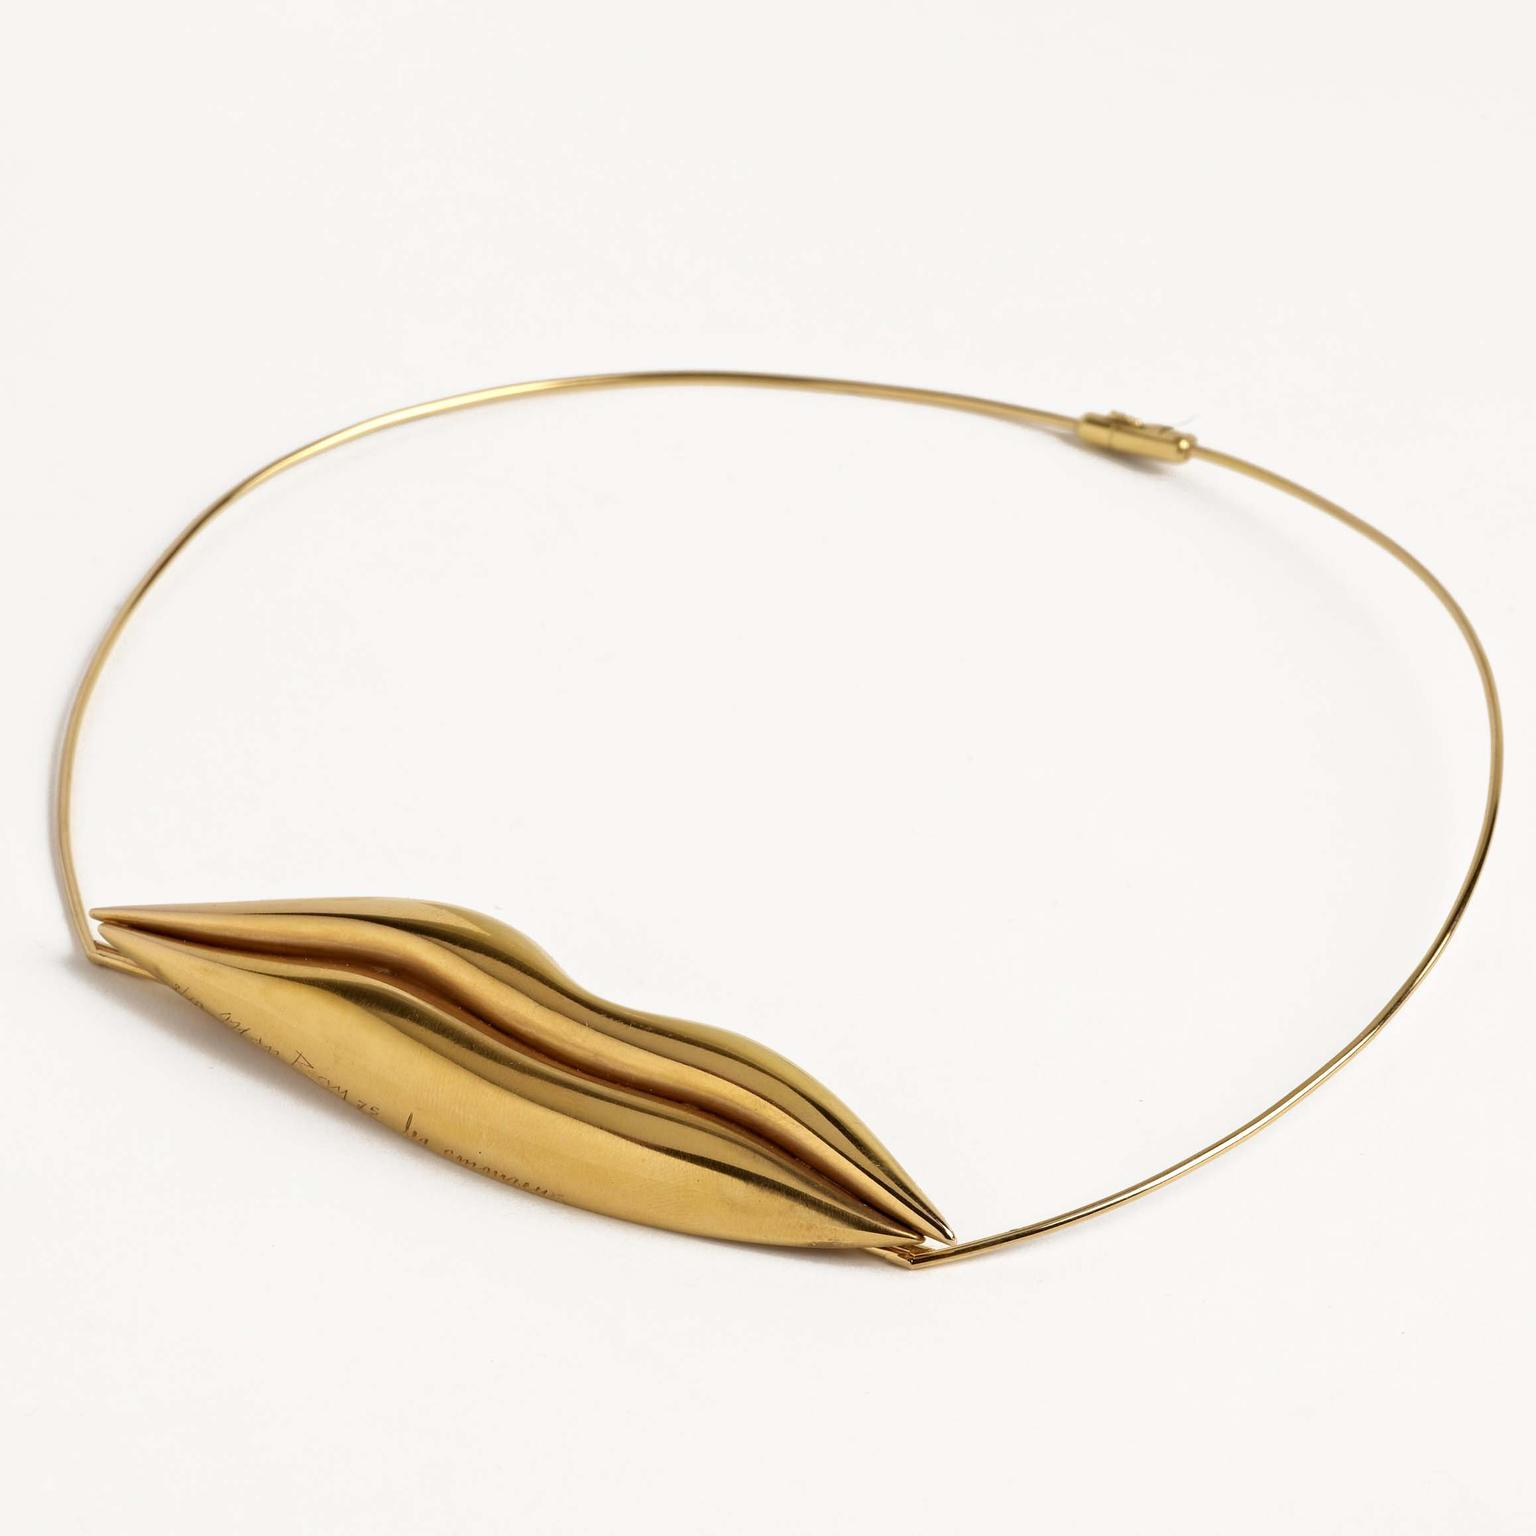 Les Amoureux necklace from Man Ray